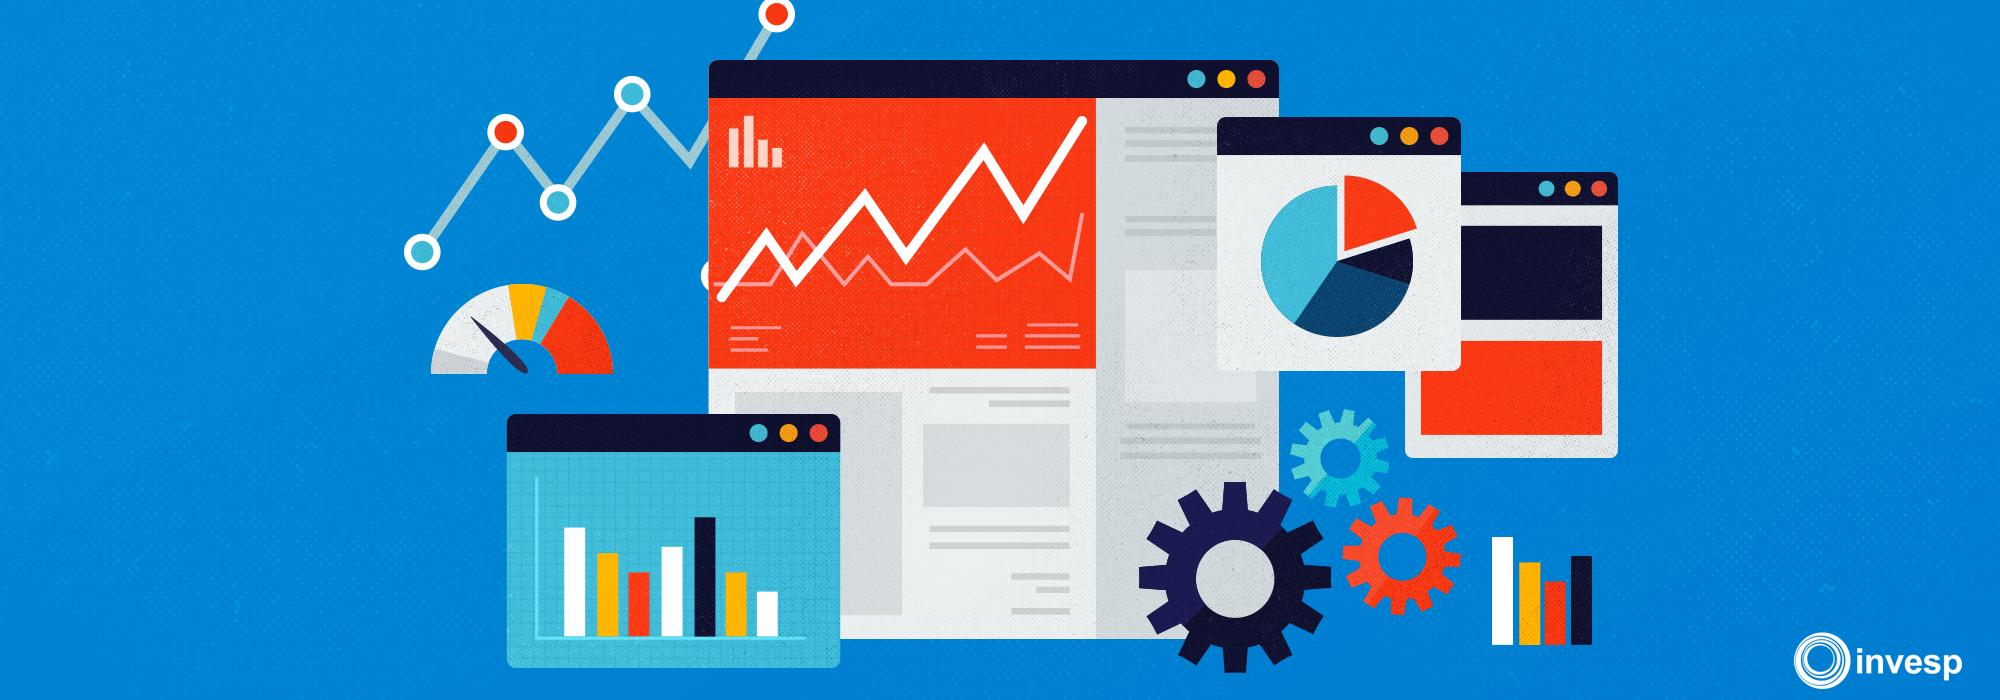 Using analytics for conversion rate optimization